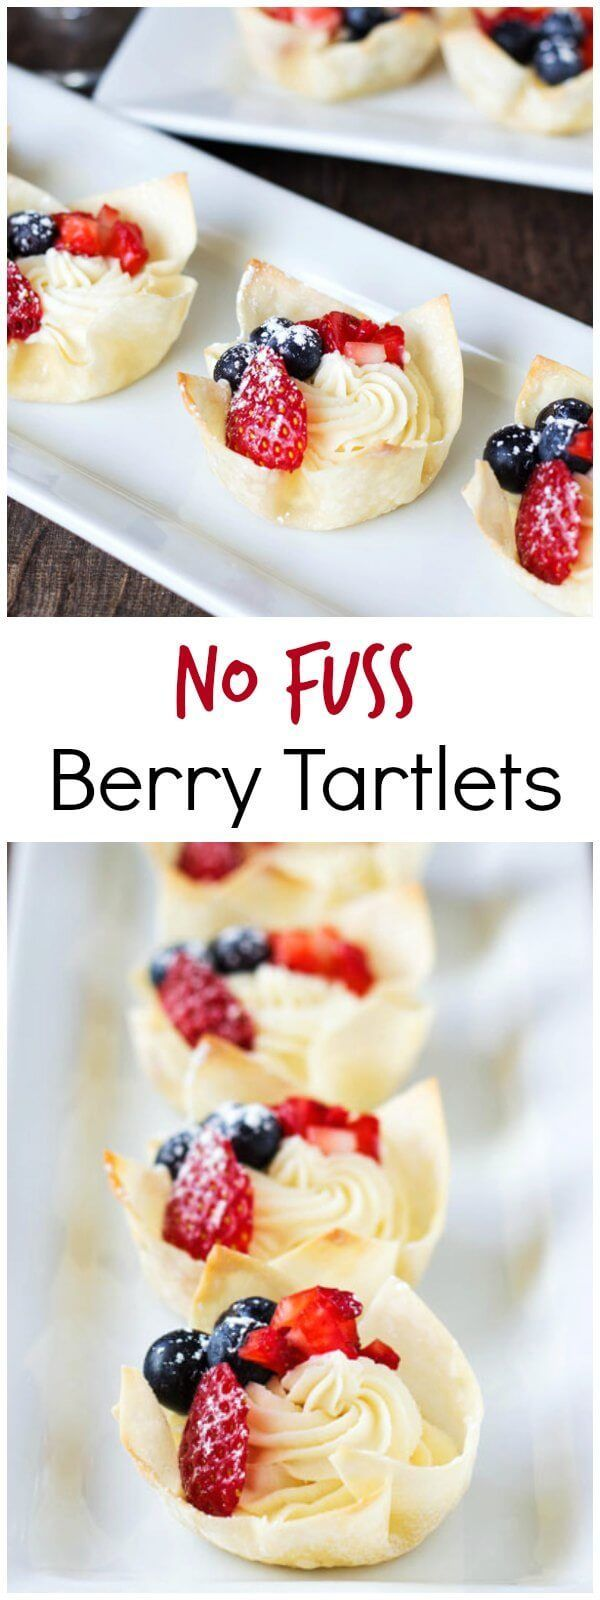 These crunchy, creamy, juicy mini berry tartlets are super easy to make. No pastry dough needed!